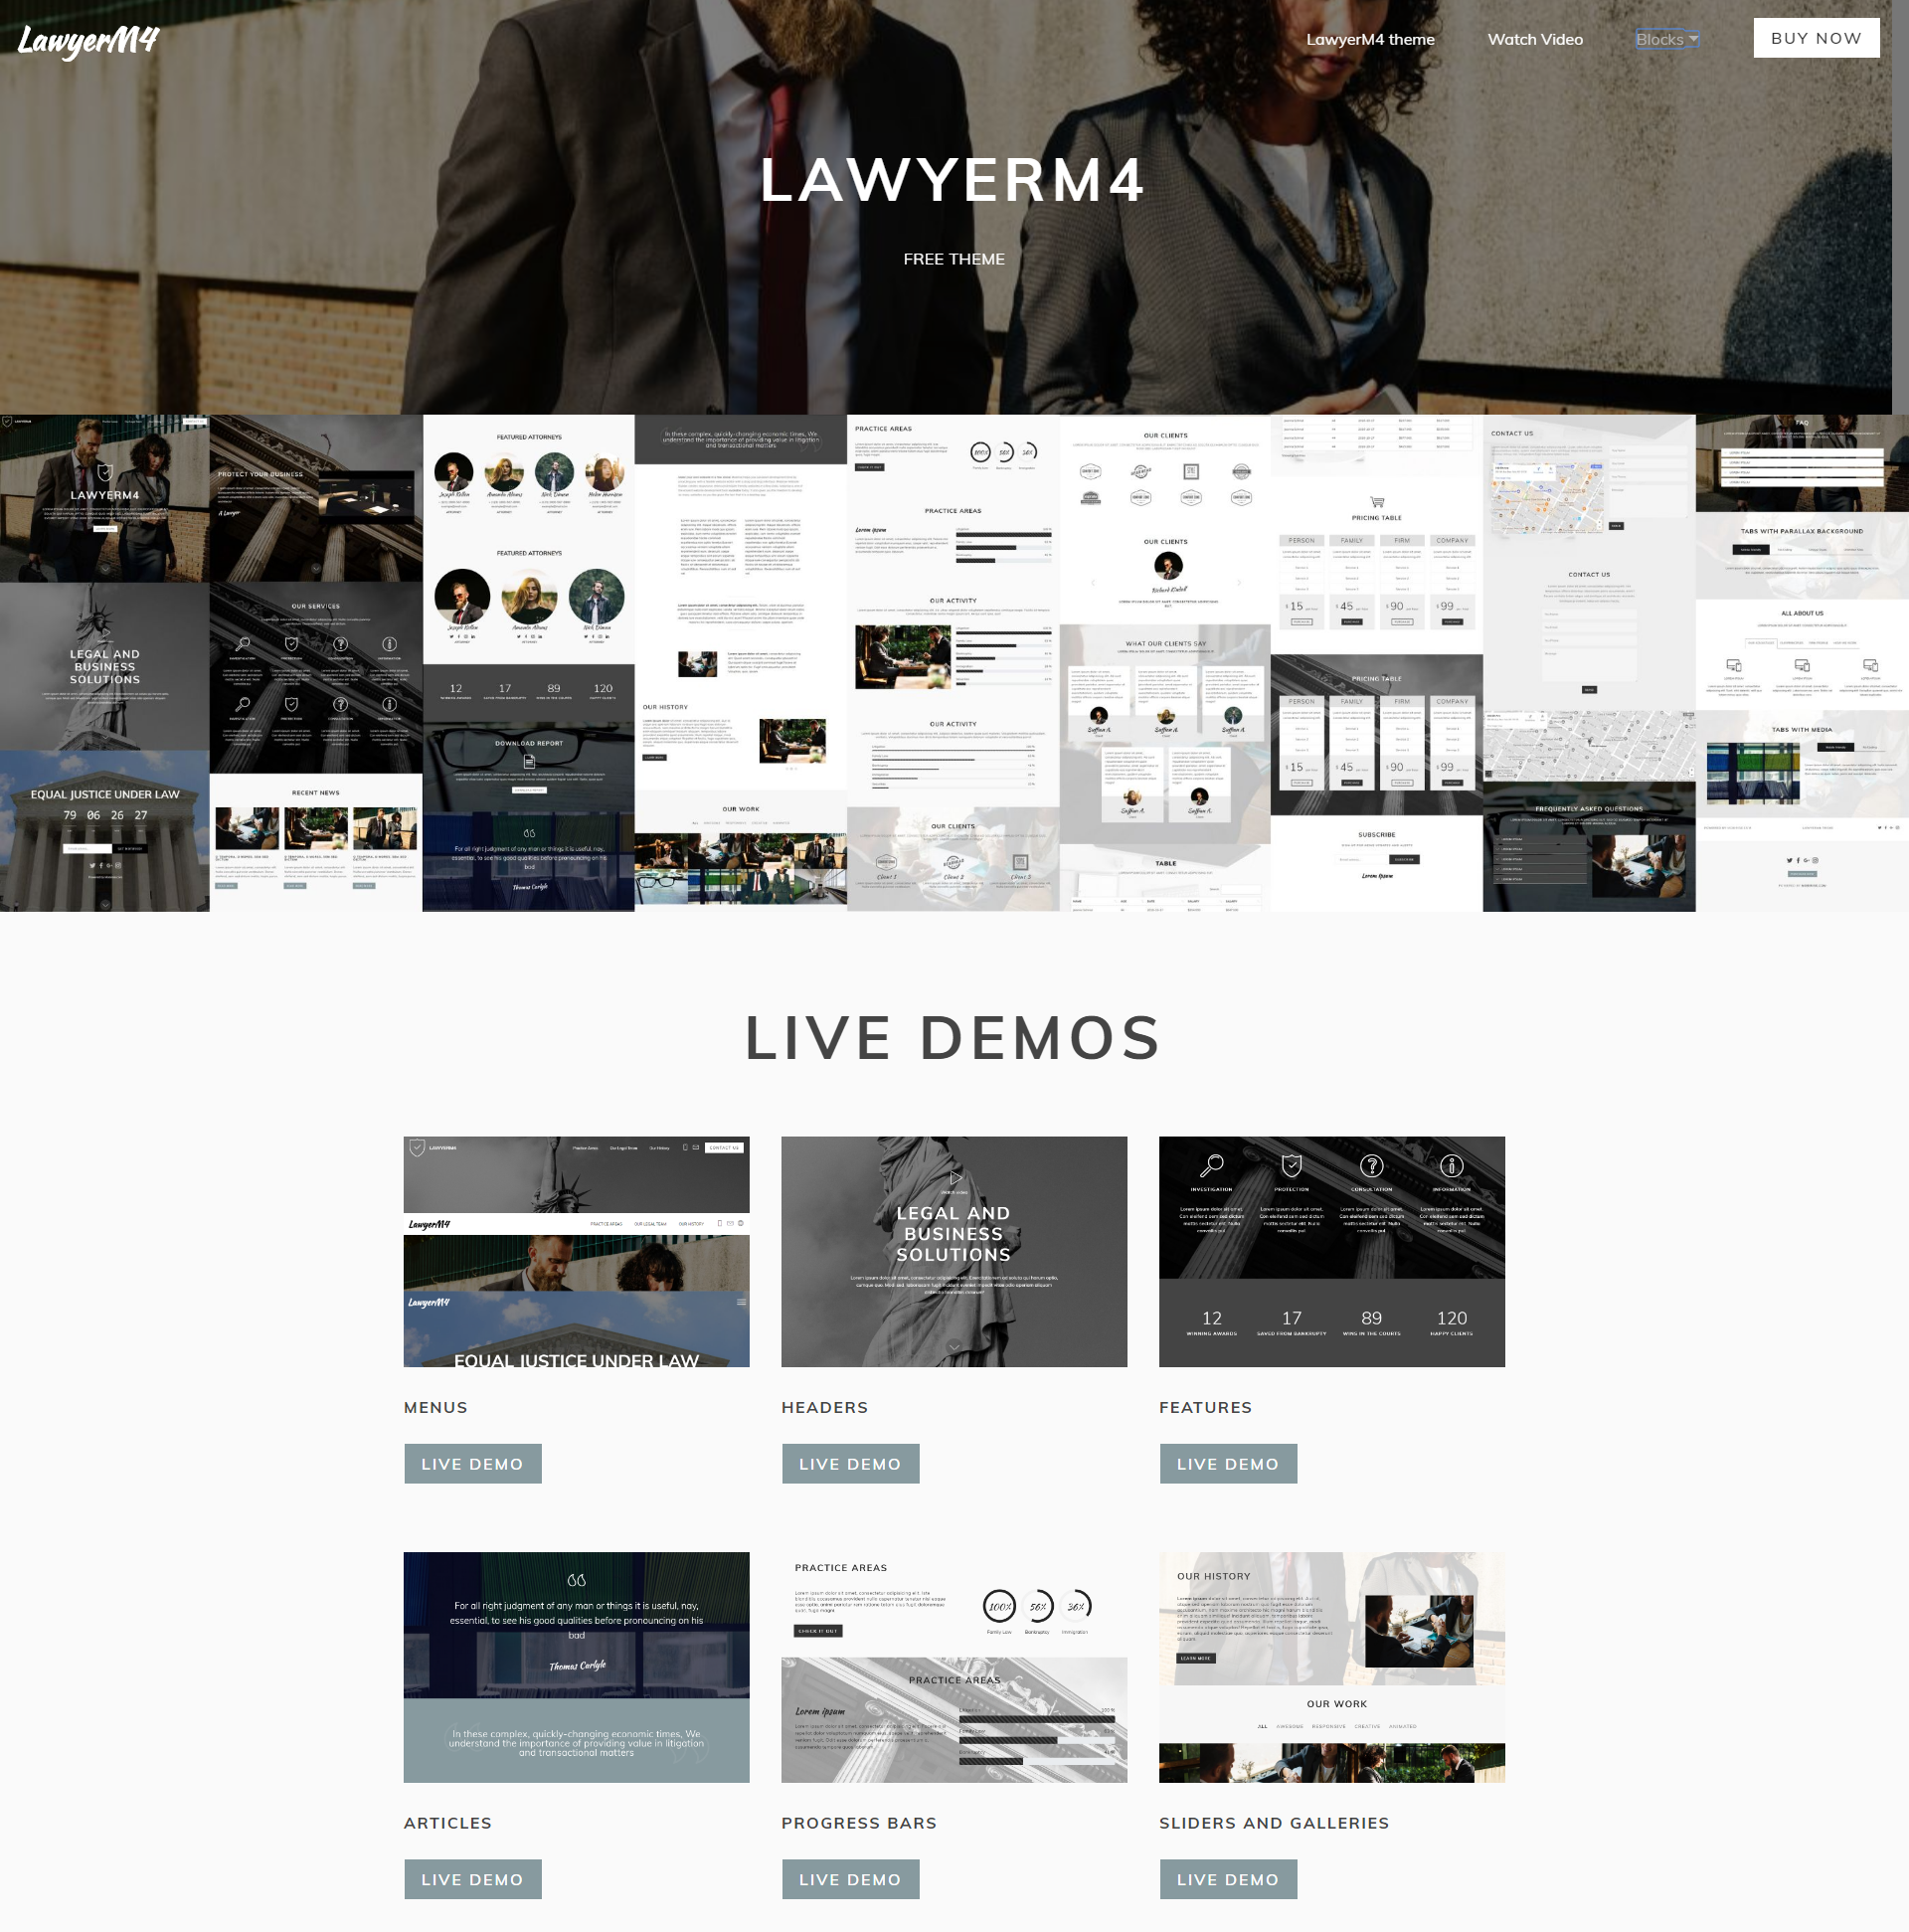 Free Download Bootstrap LawyerM4 Templates